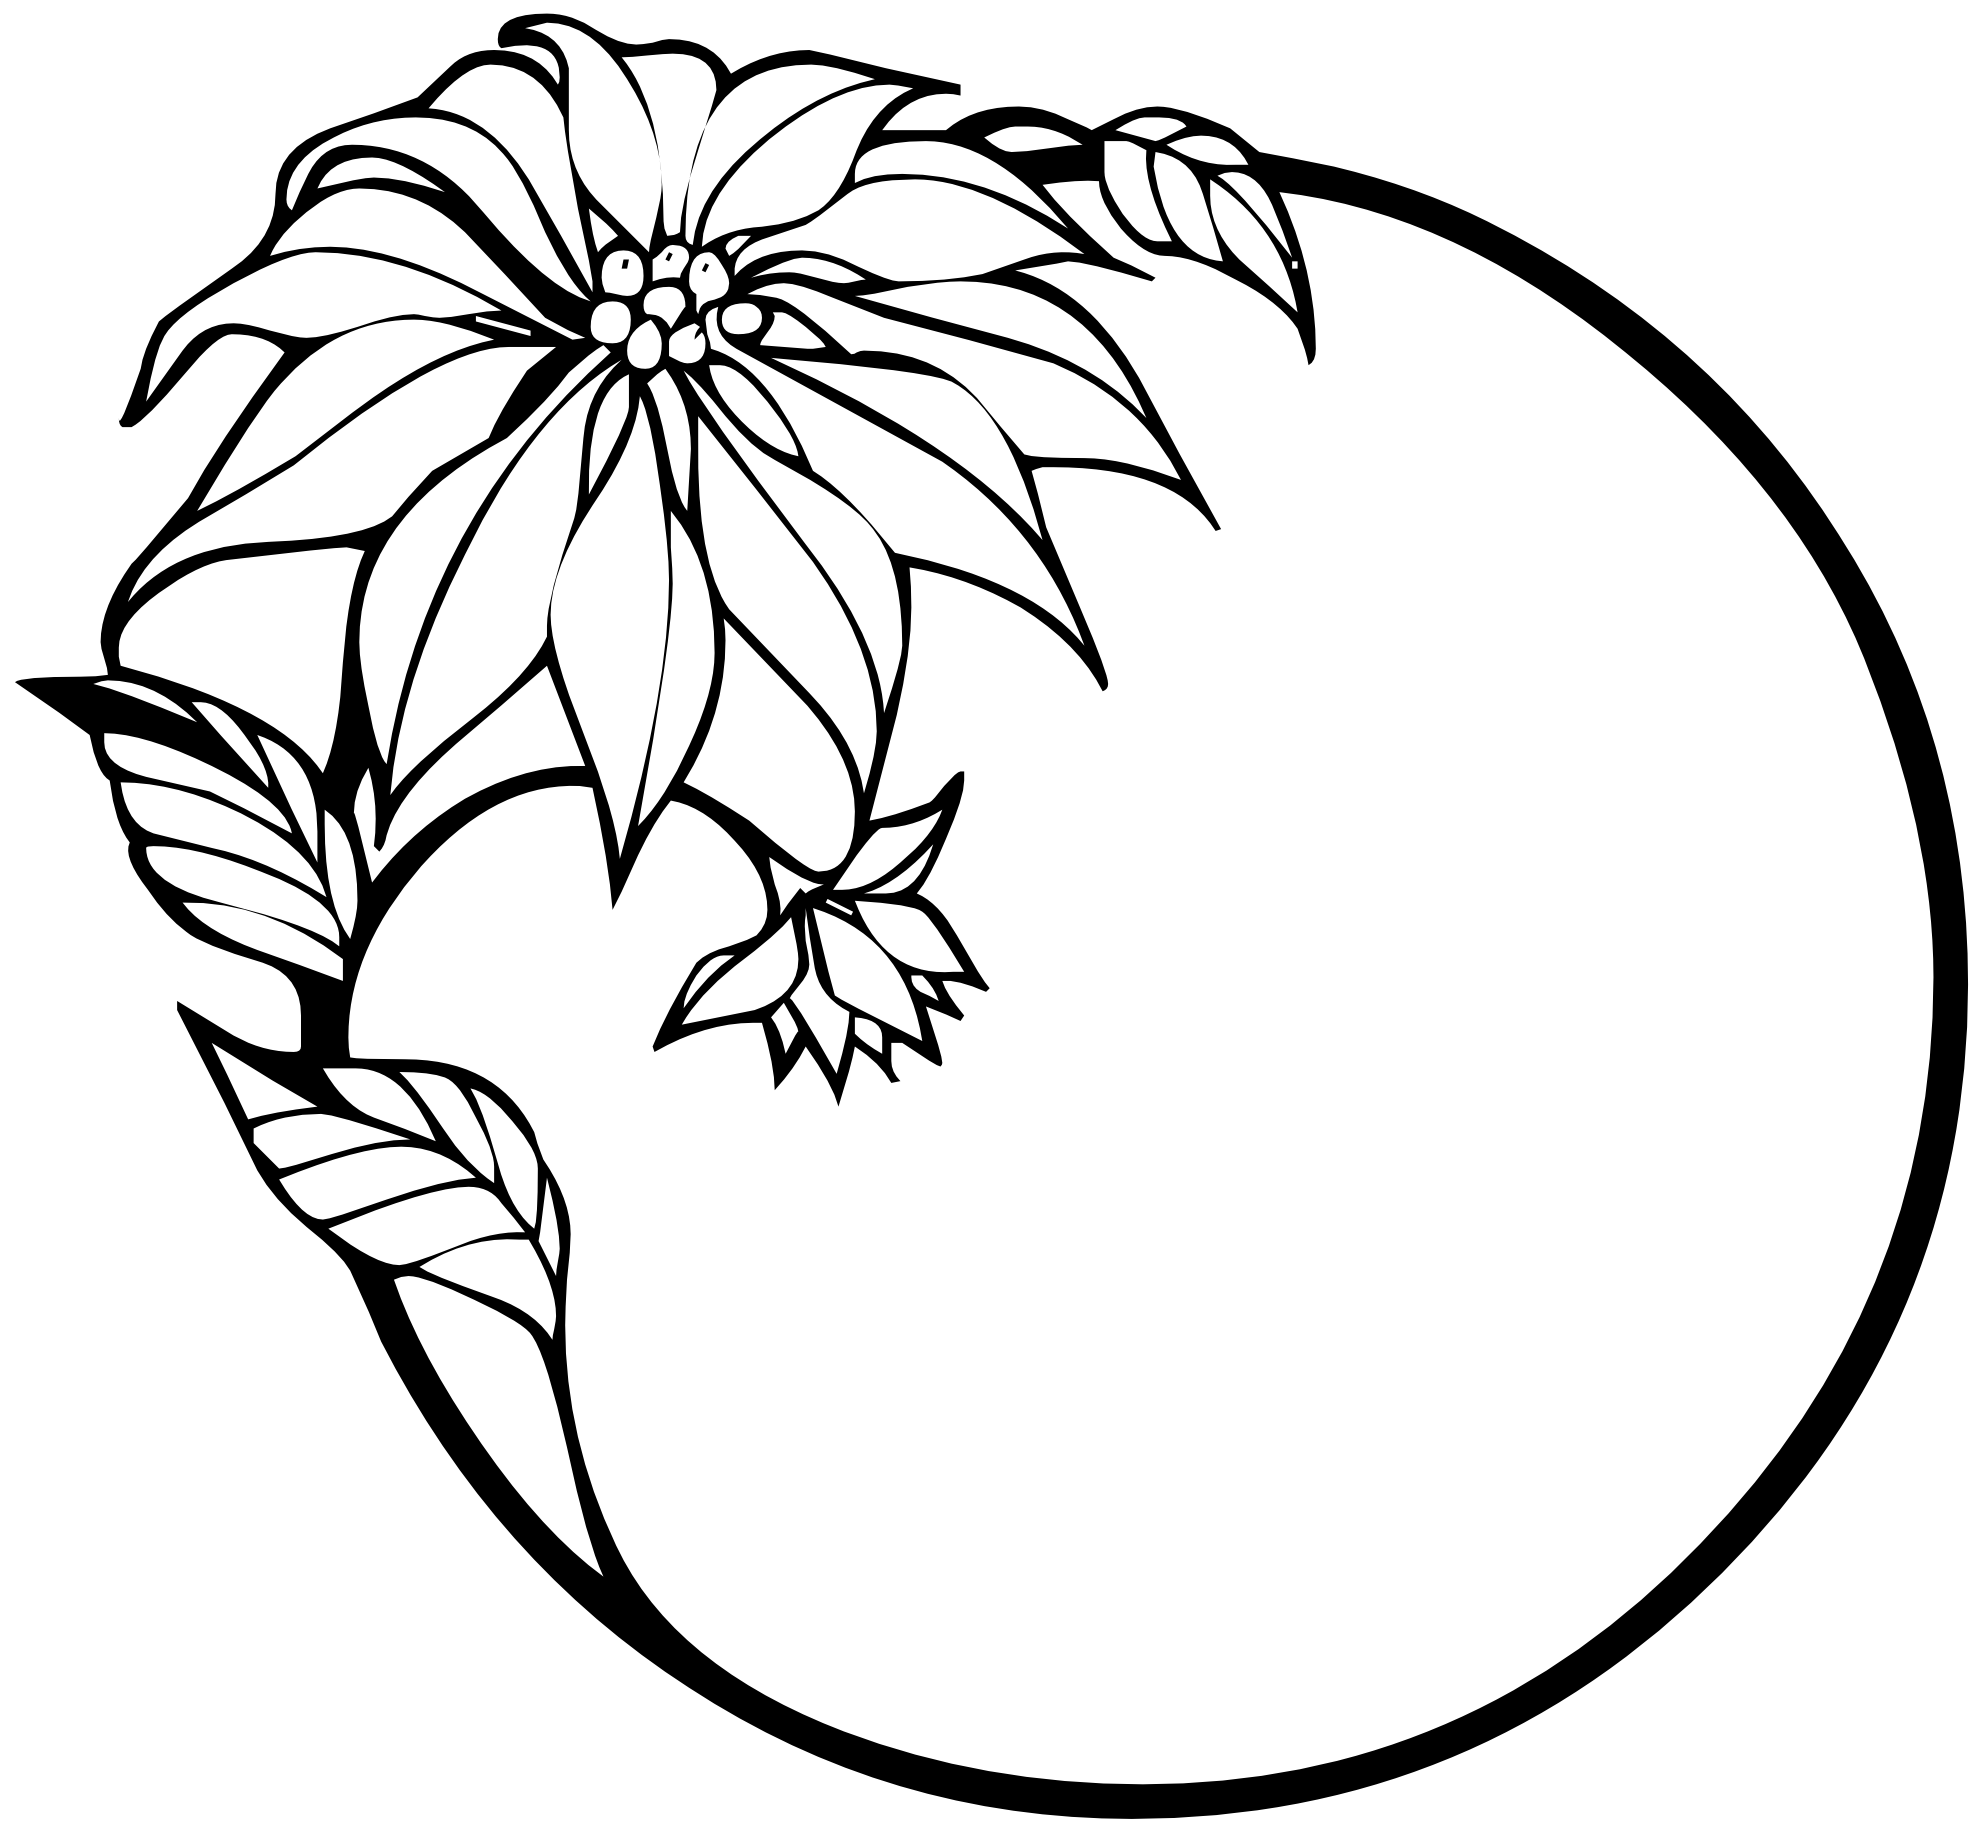 Flower Circle Line Drawing : Flowers clipart black and white panda free